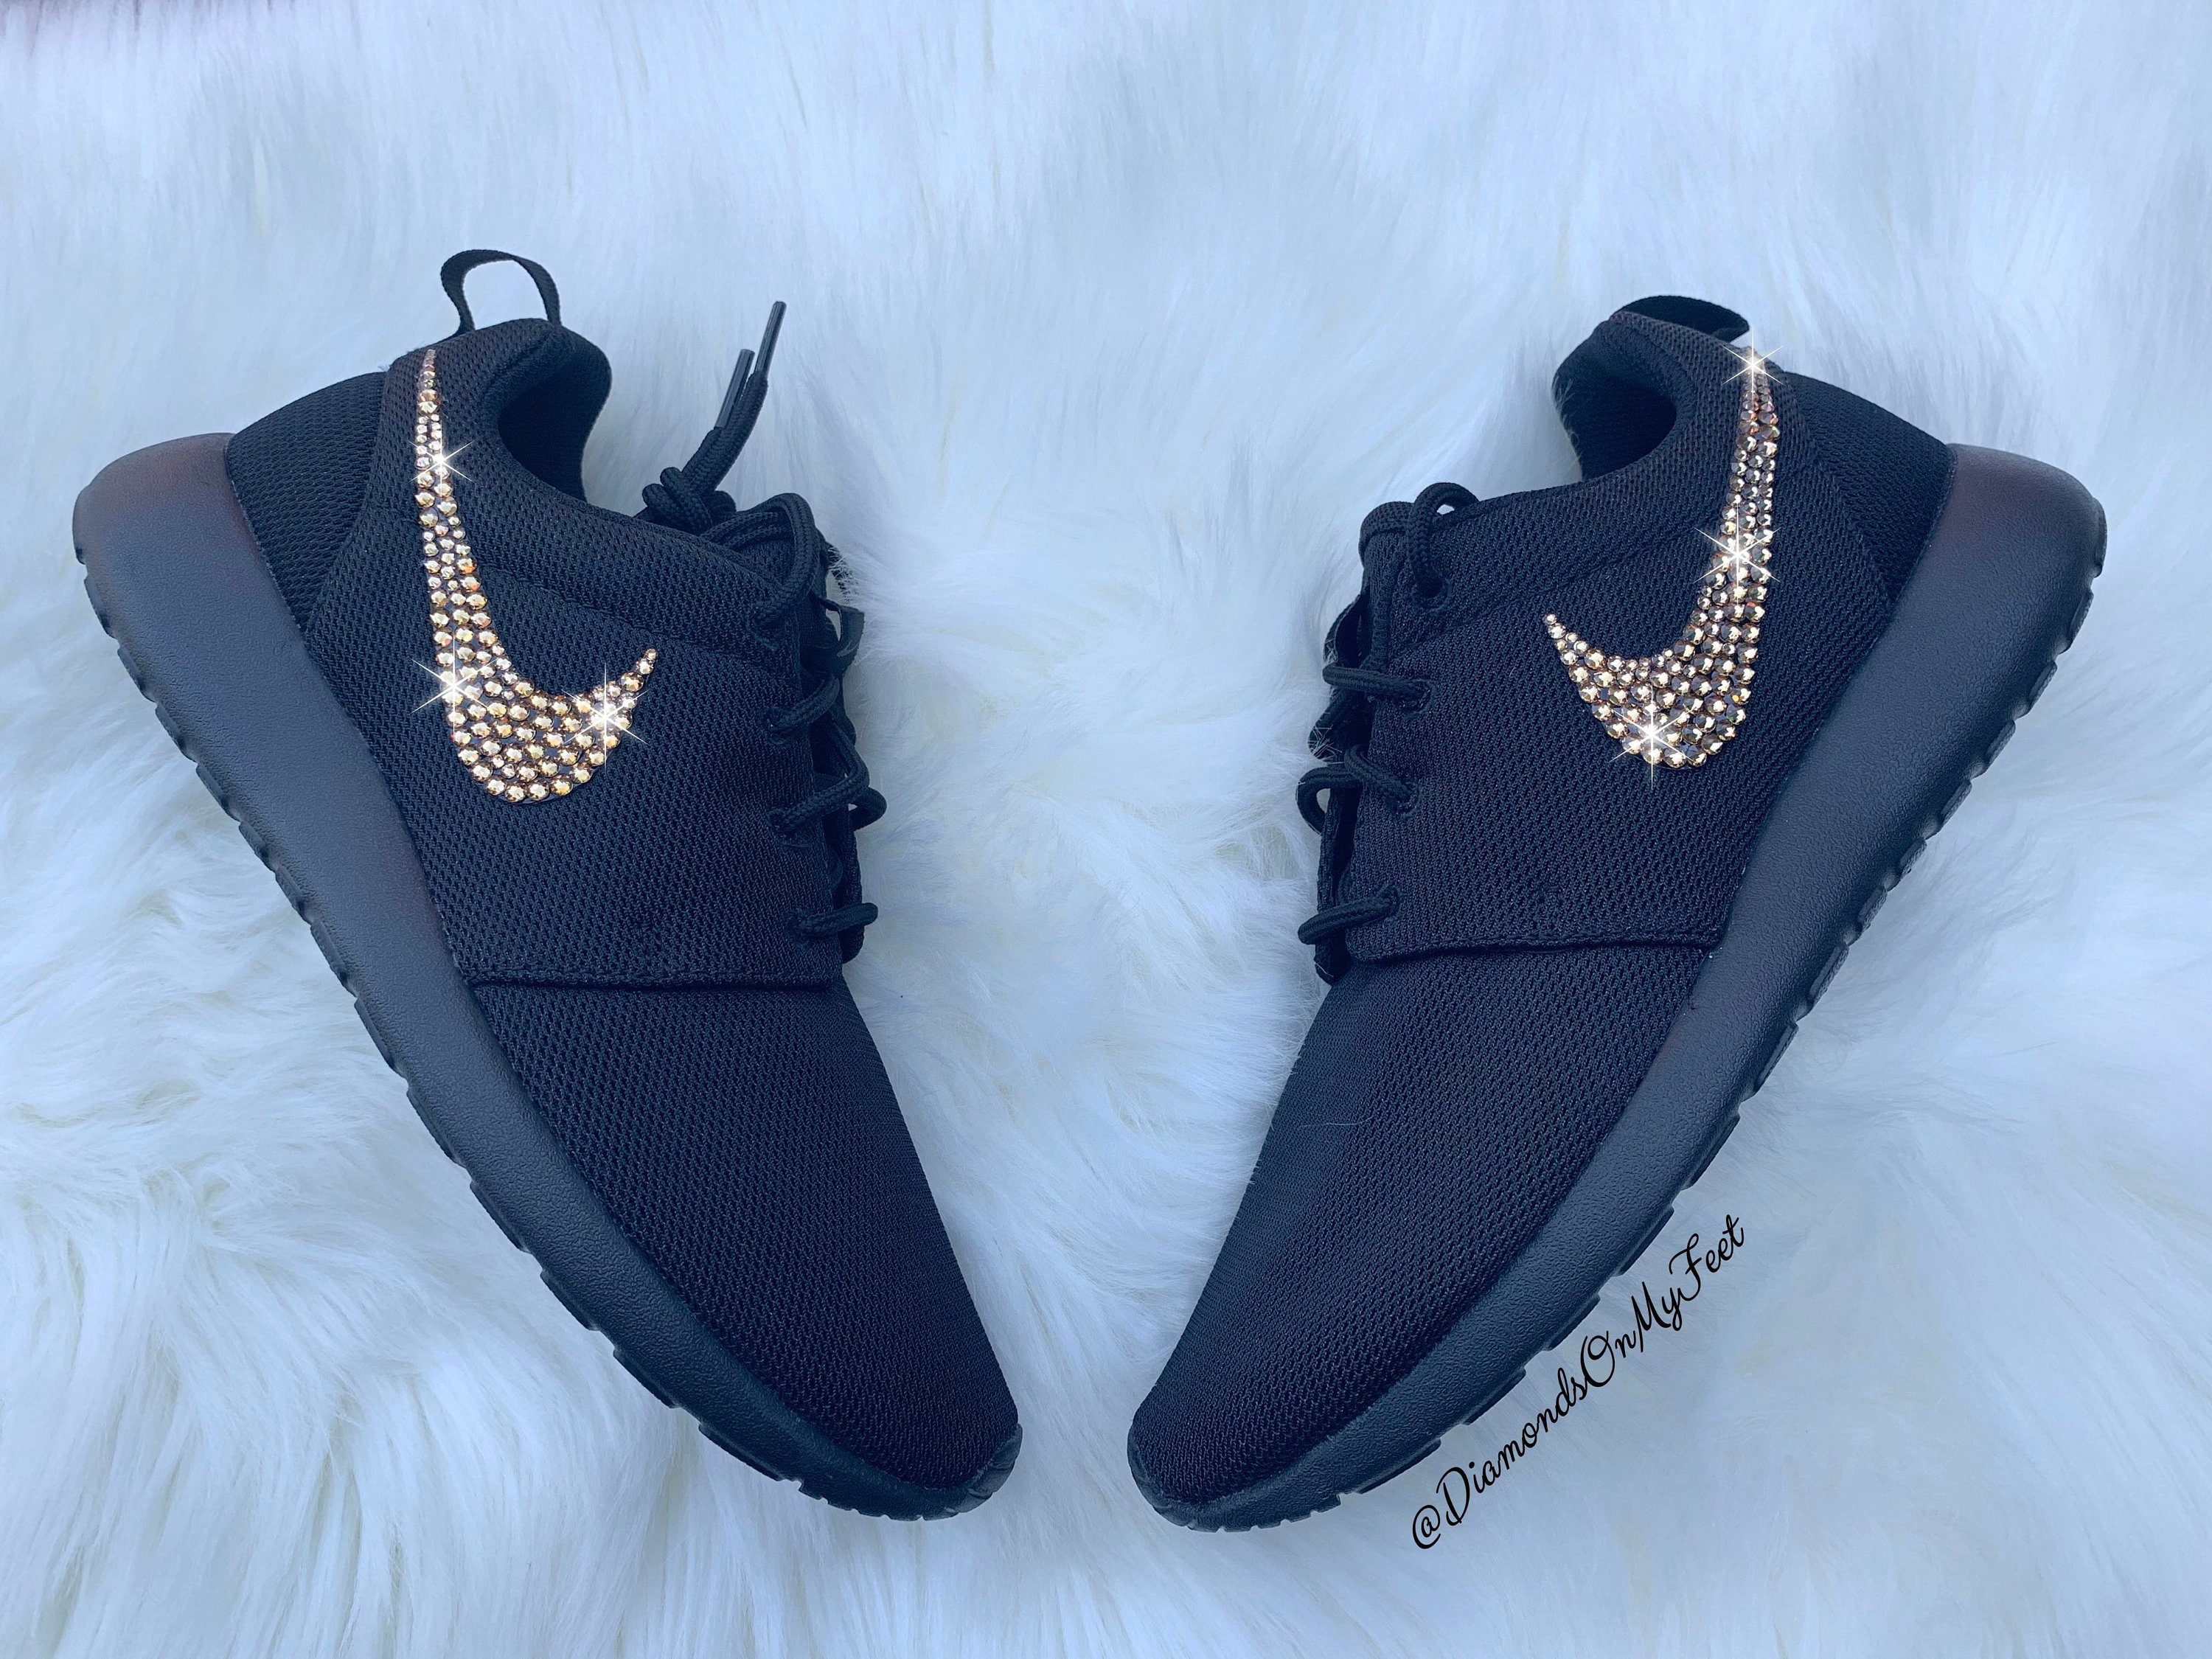 official photos d5f25 15743 Swarovski Women's Nike Roshe Run Roshe One All Black Sneakers Blinged Out  With Authentic Swarovski Crystals Custom Bling Shoes